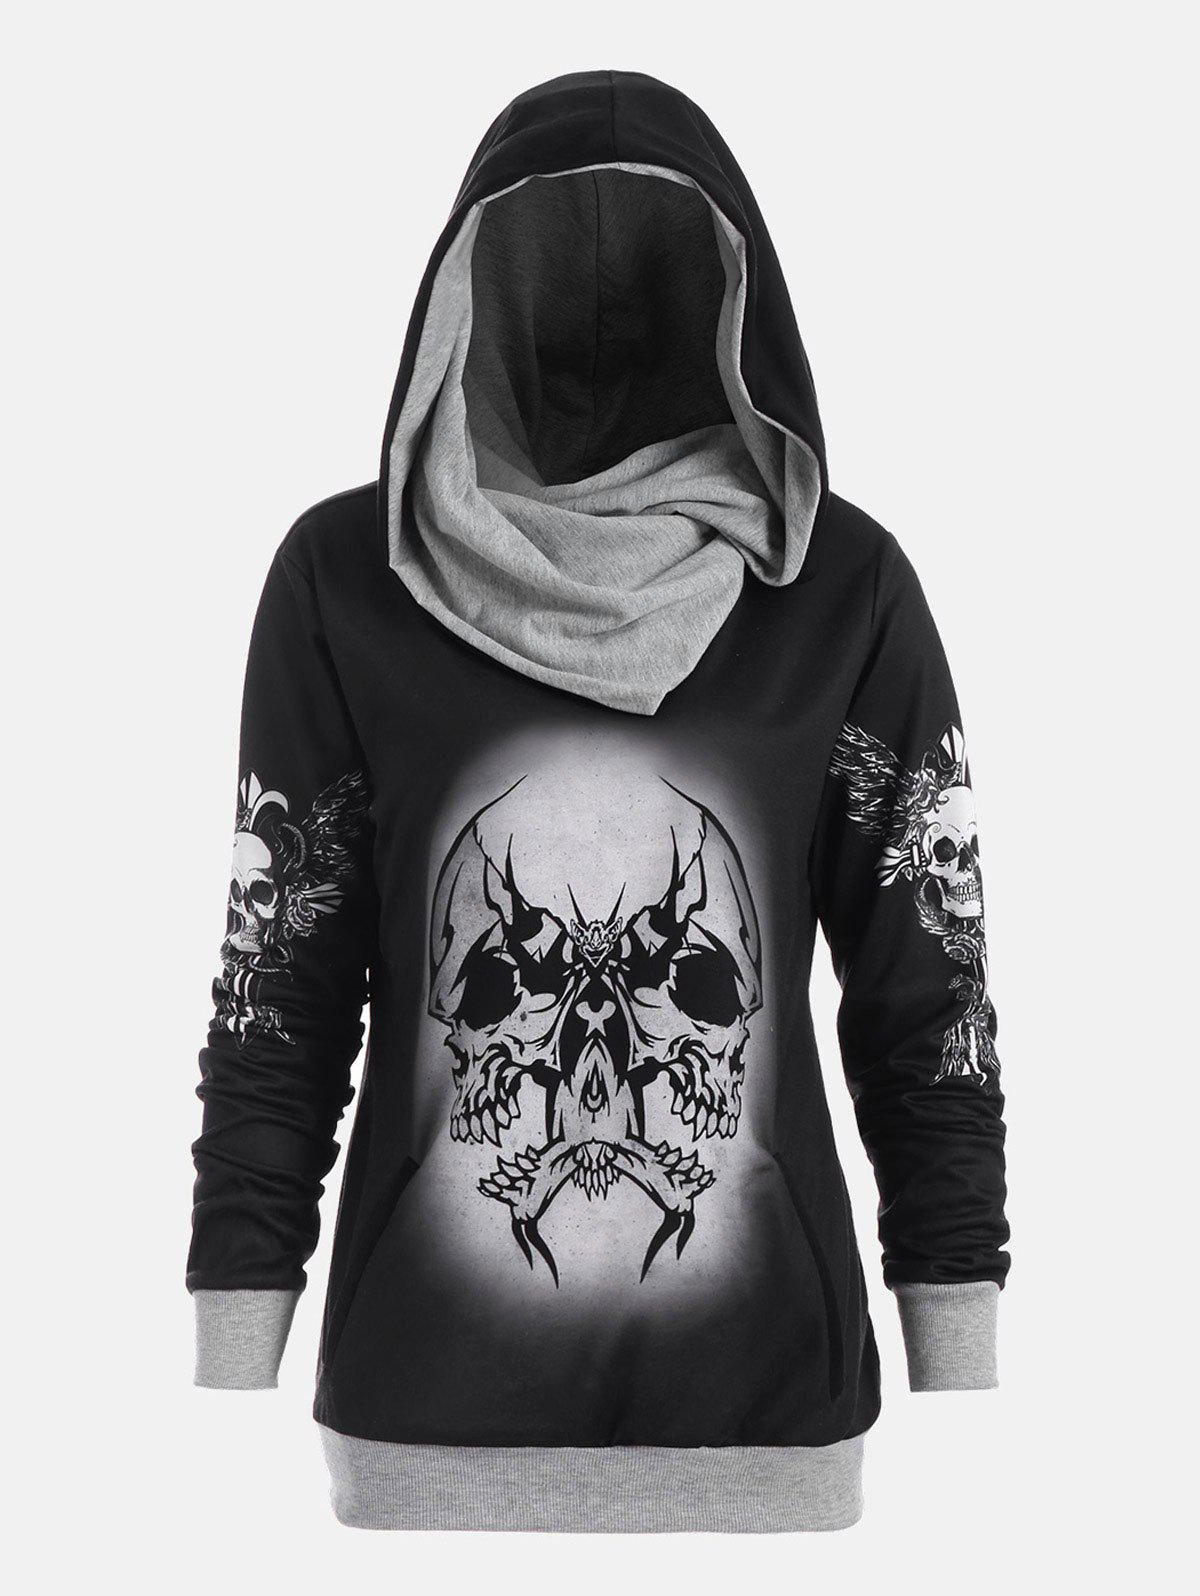 Skull and Wings Print Halloween Hoodie - GRAY 2XL